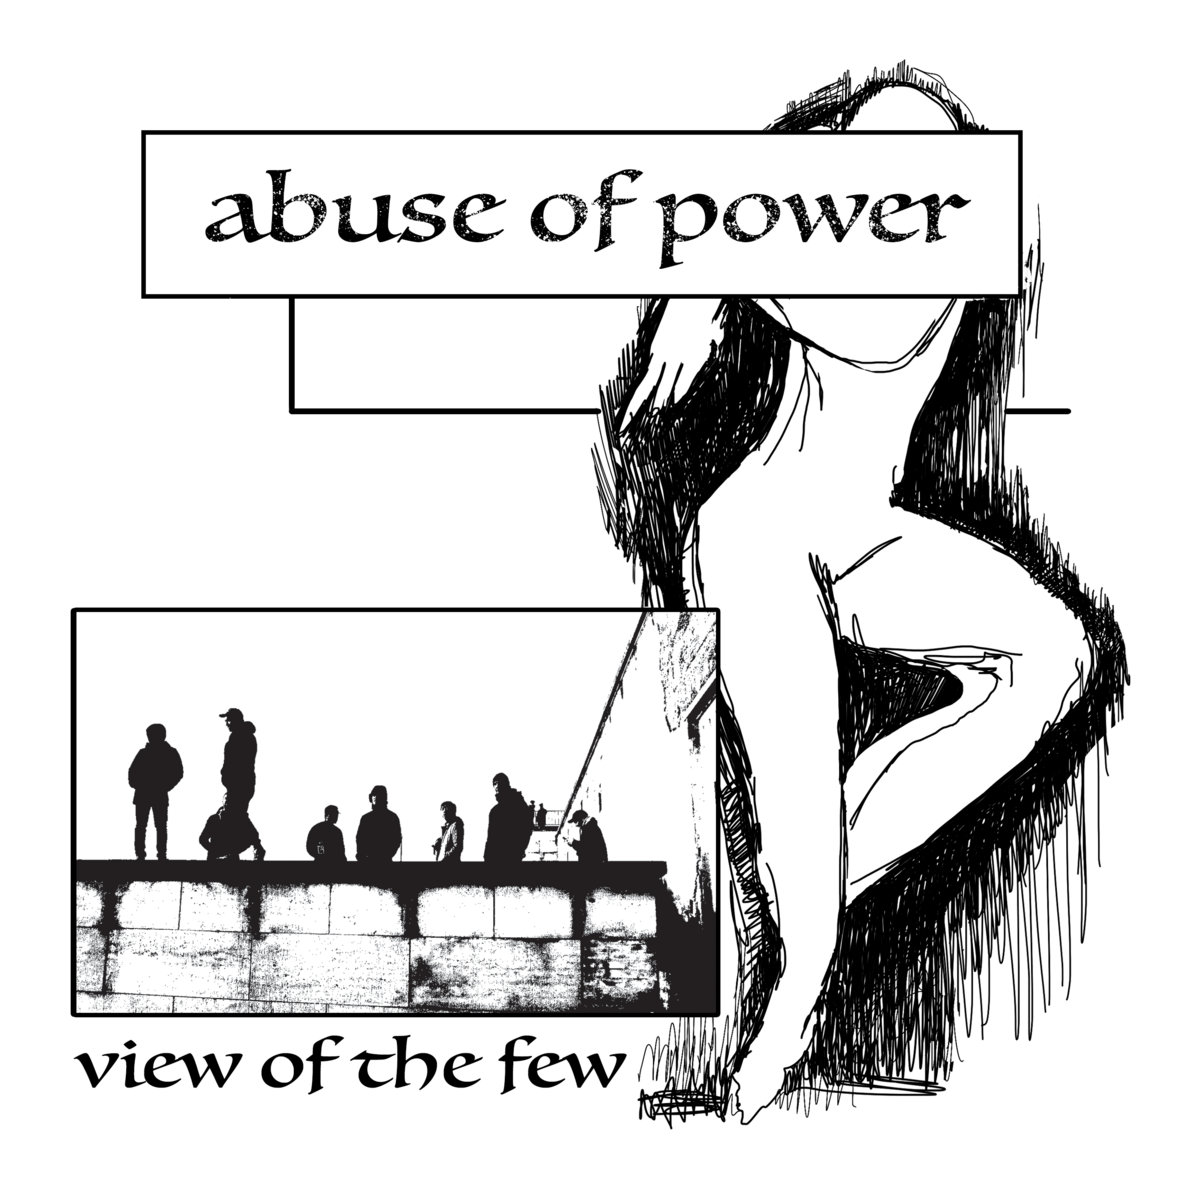 view of the few blame abuse of power